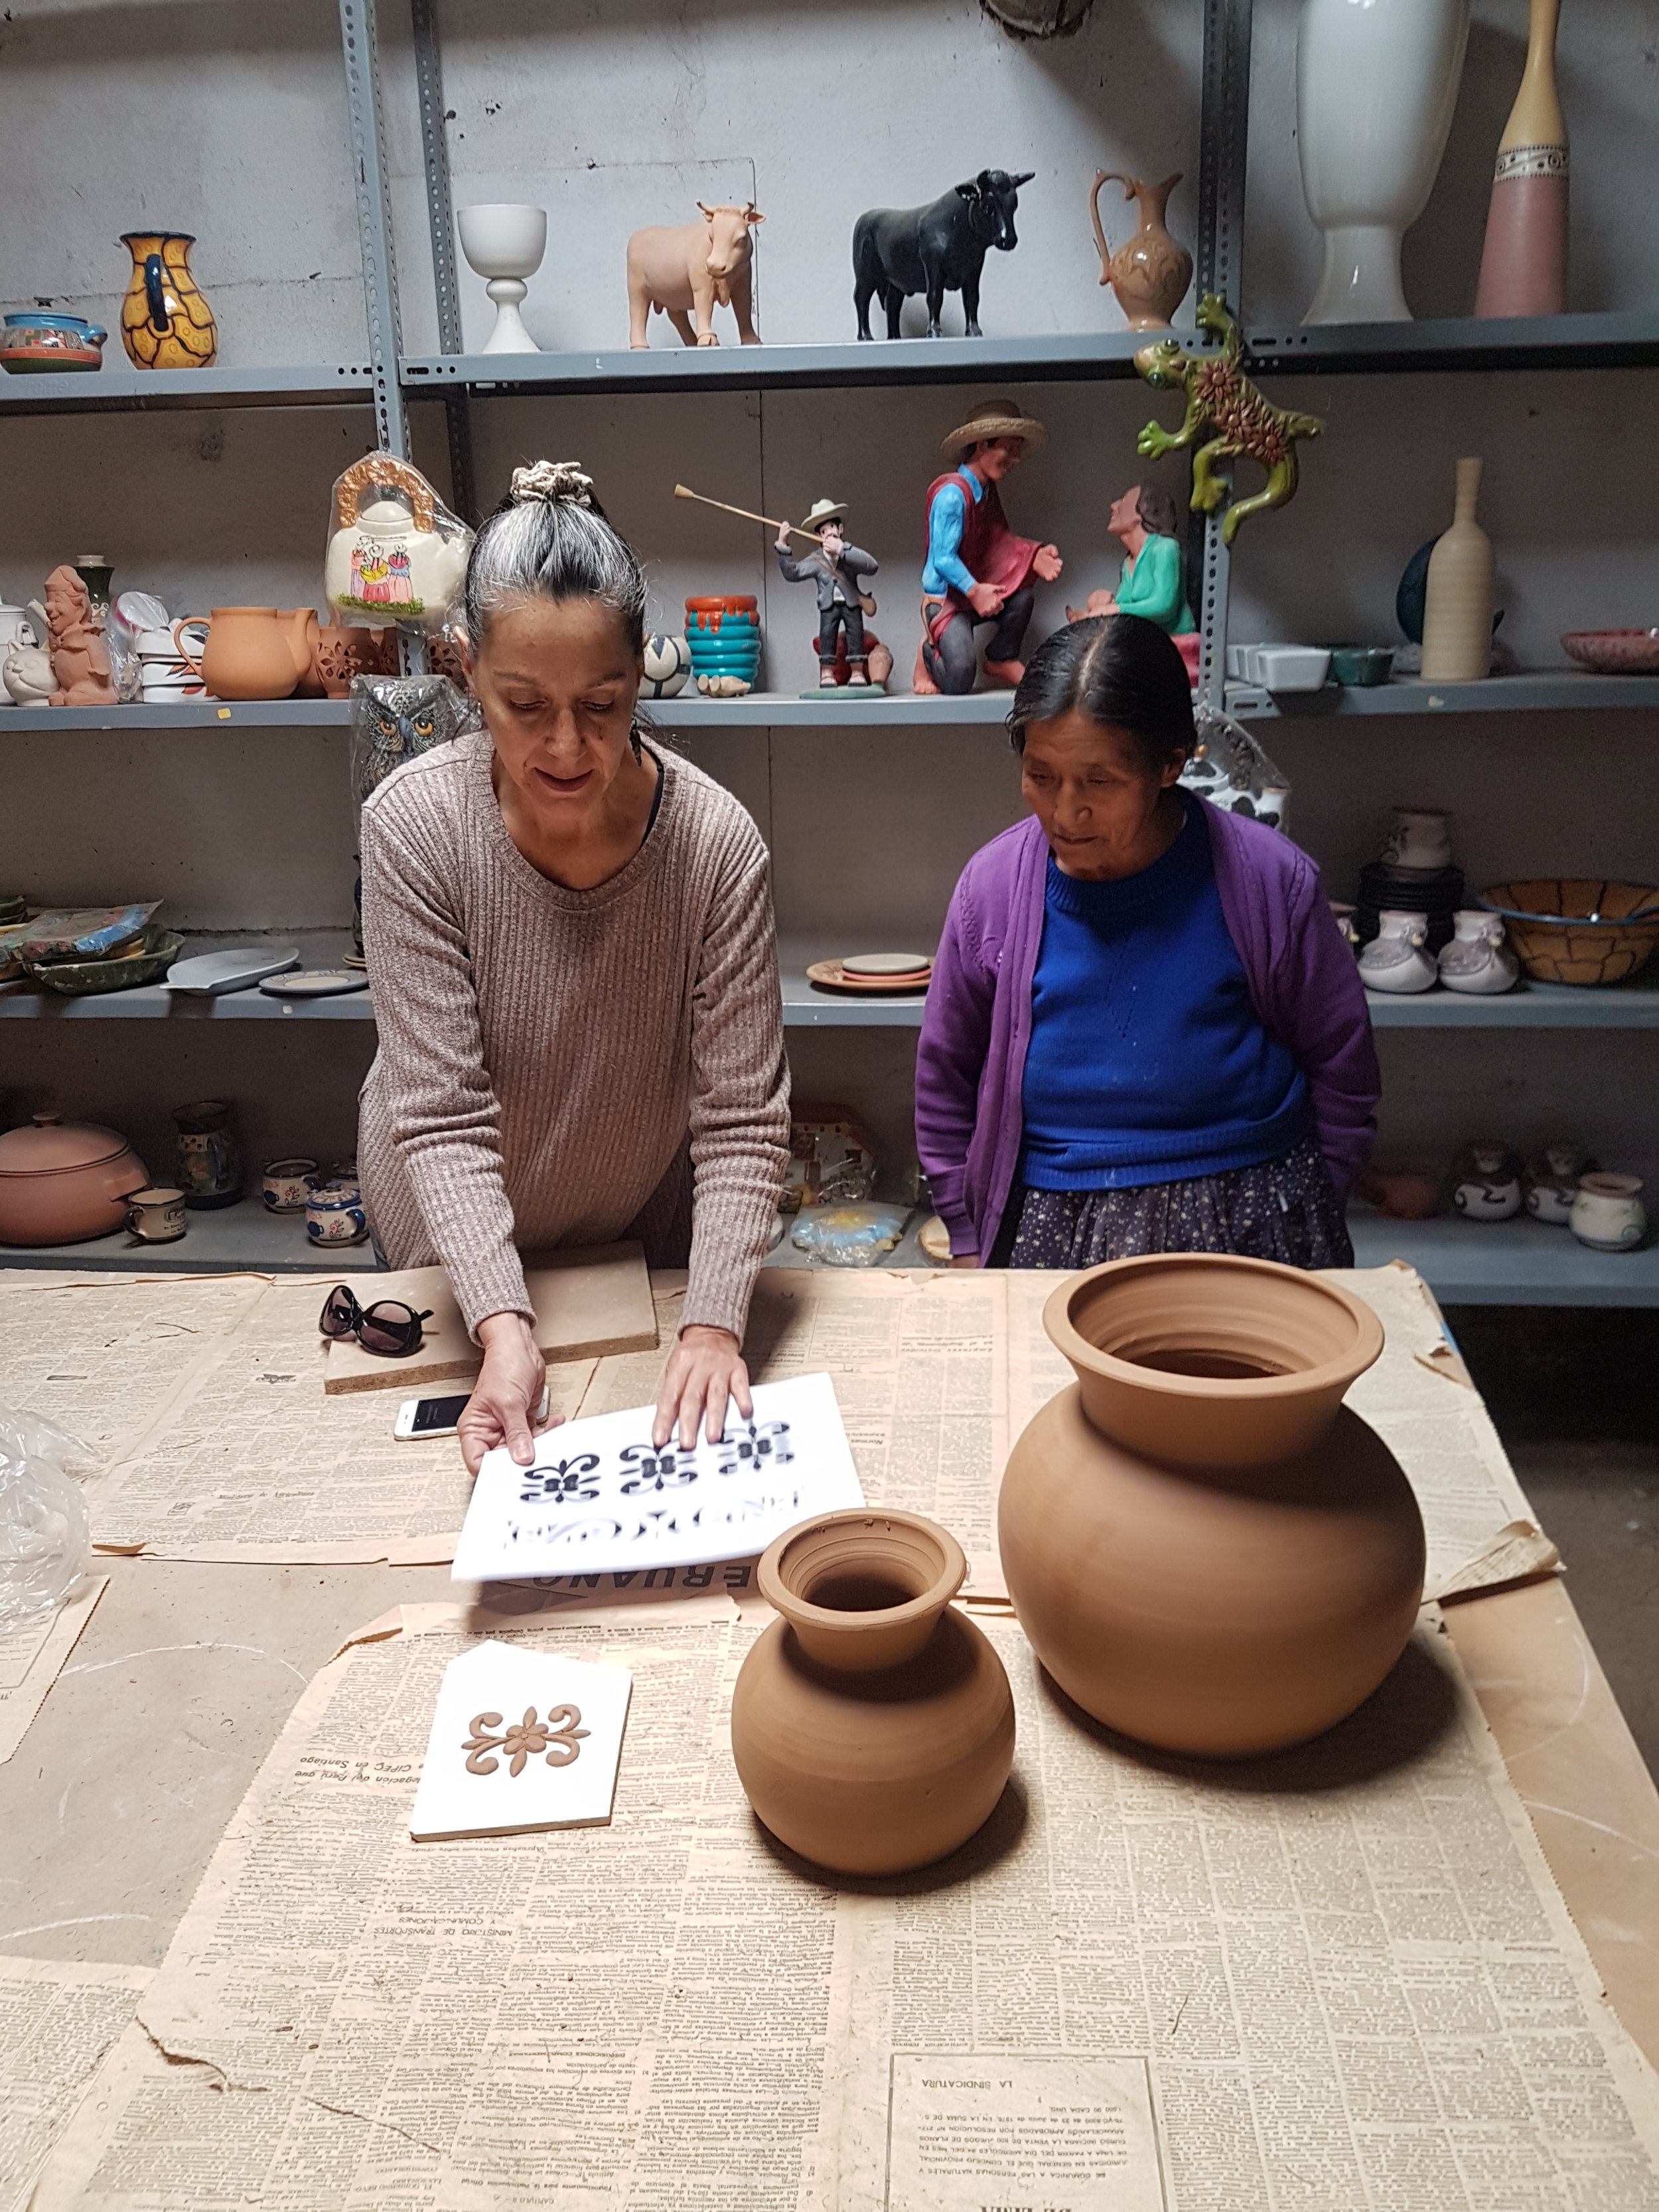 The Project   SPI is working with local stone and ceramic artisans to create compelling products which utilize local culture. This not only gives artisans extra income and a connection to their local heritage, but offers visitors the chance to purchase local souvenirs based on the heritage they are visiting. SPI designers have produced a collection of products in stone and ceramic which draw motifs from the architecture of the city.